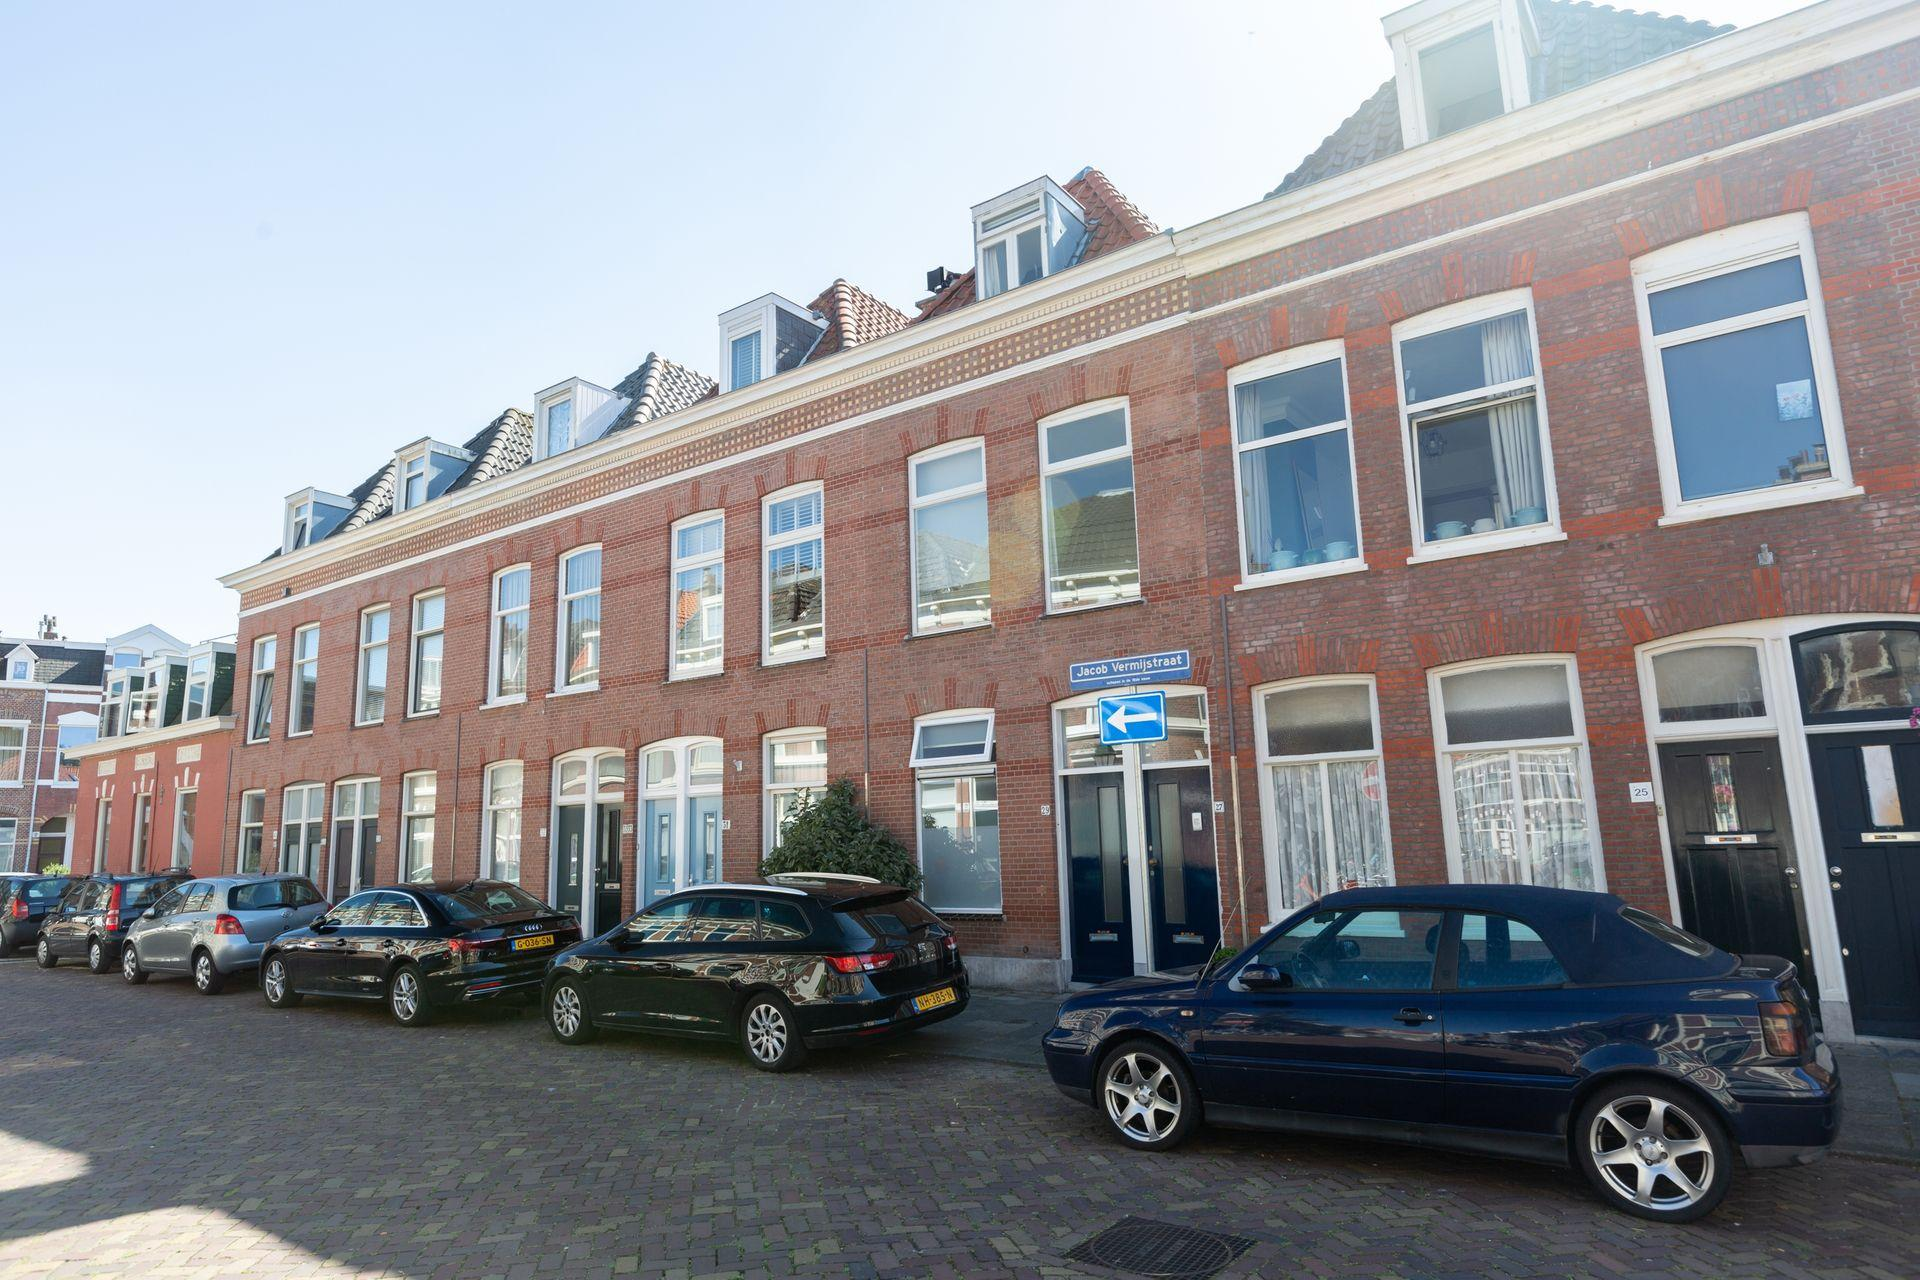 Bekijk de foto van: Jacob Vermijstraat 27, 2584 XL in Den haag - The Hague Real Estate Services